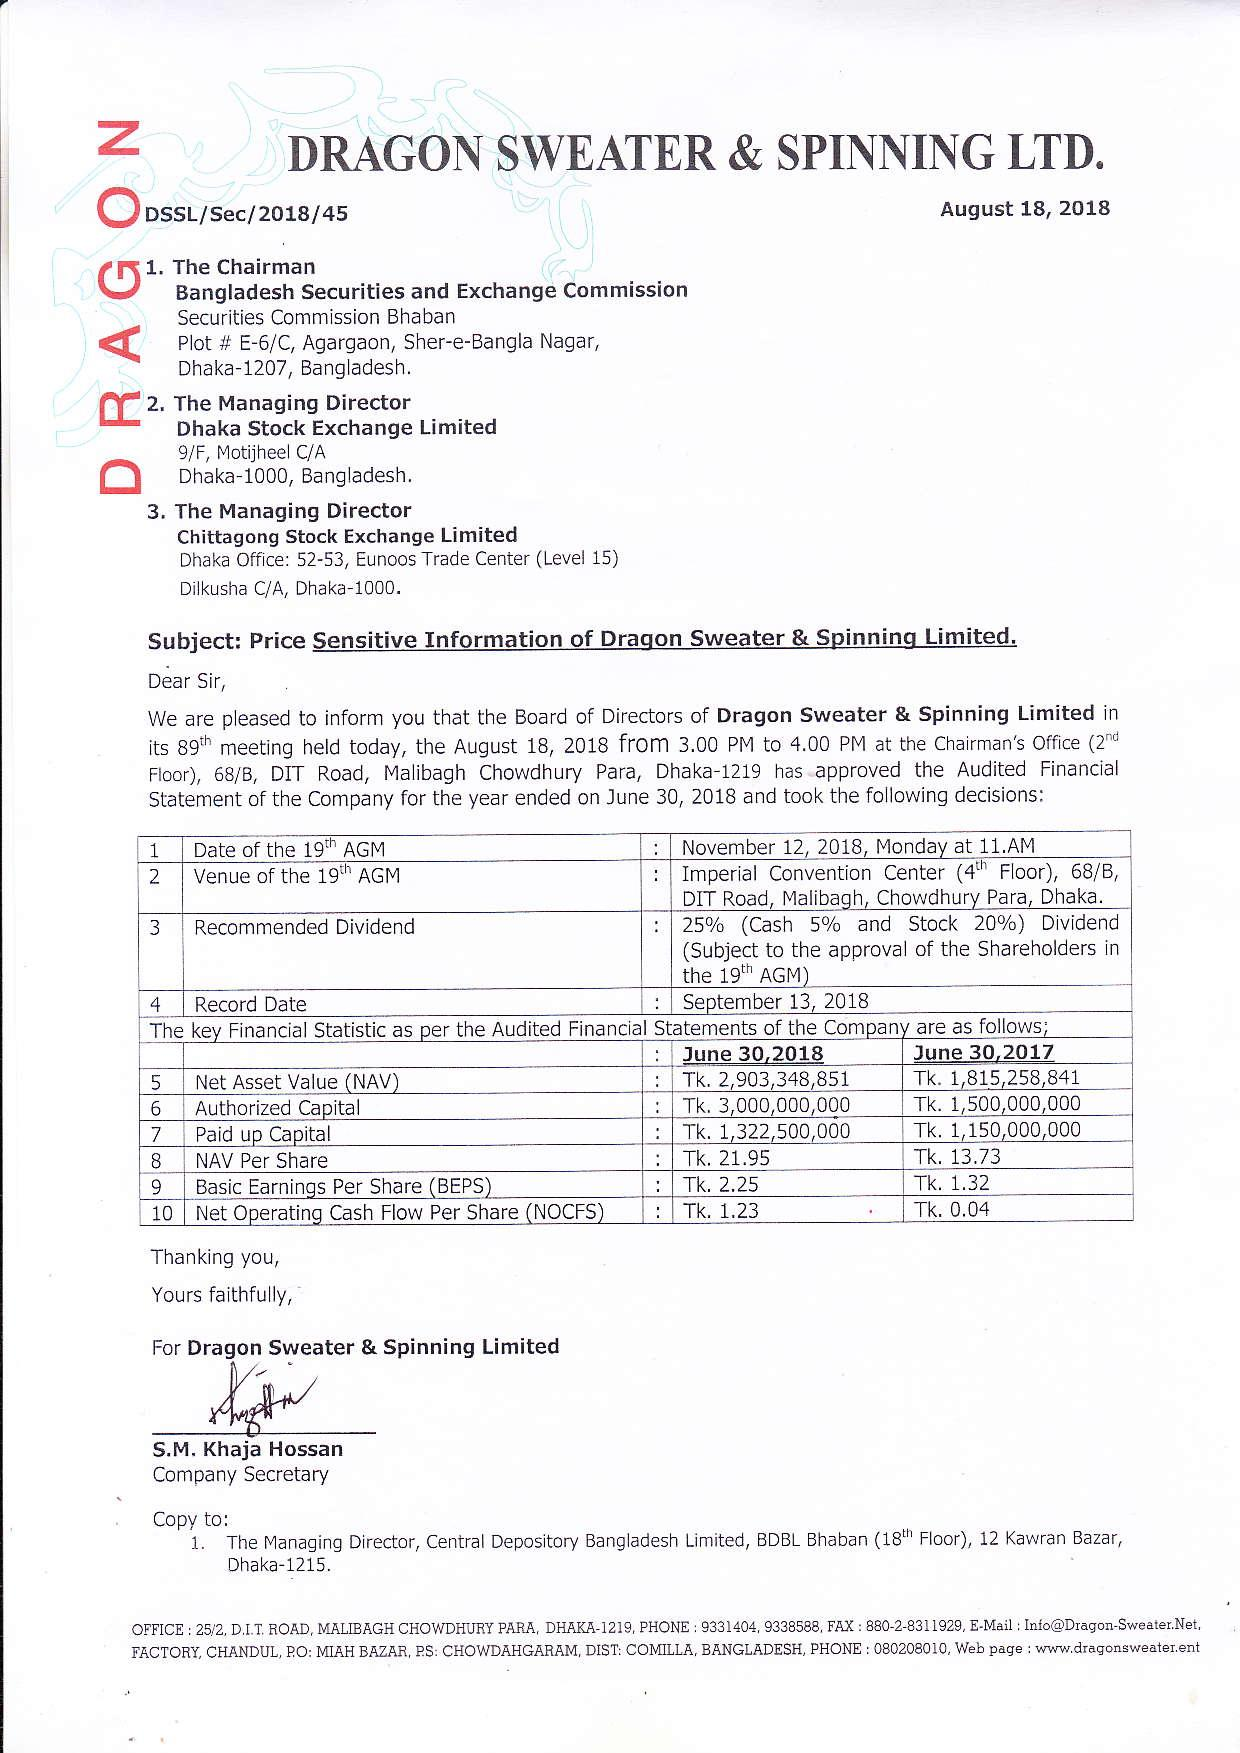 Price Sensitive Information of Dragon Sweater & Spinning Ltd (1)-page-001